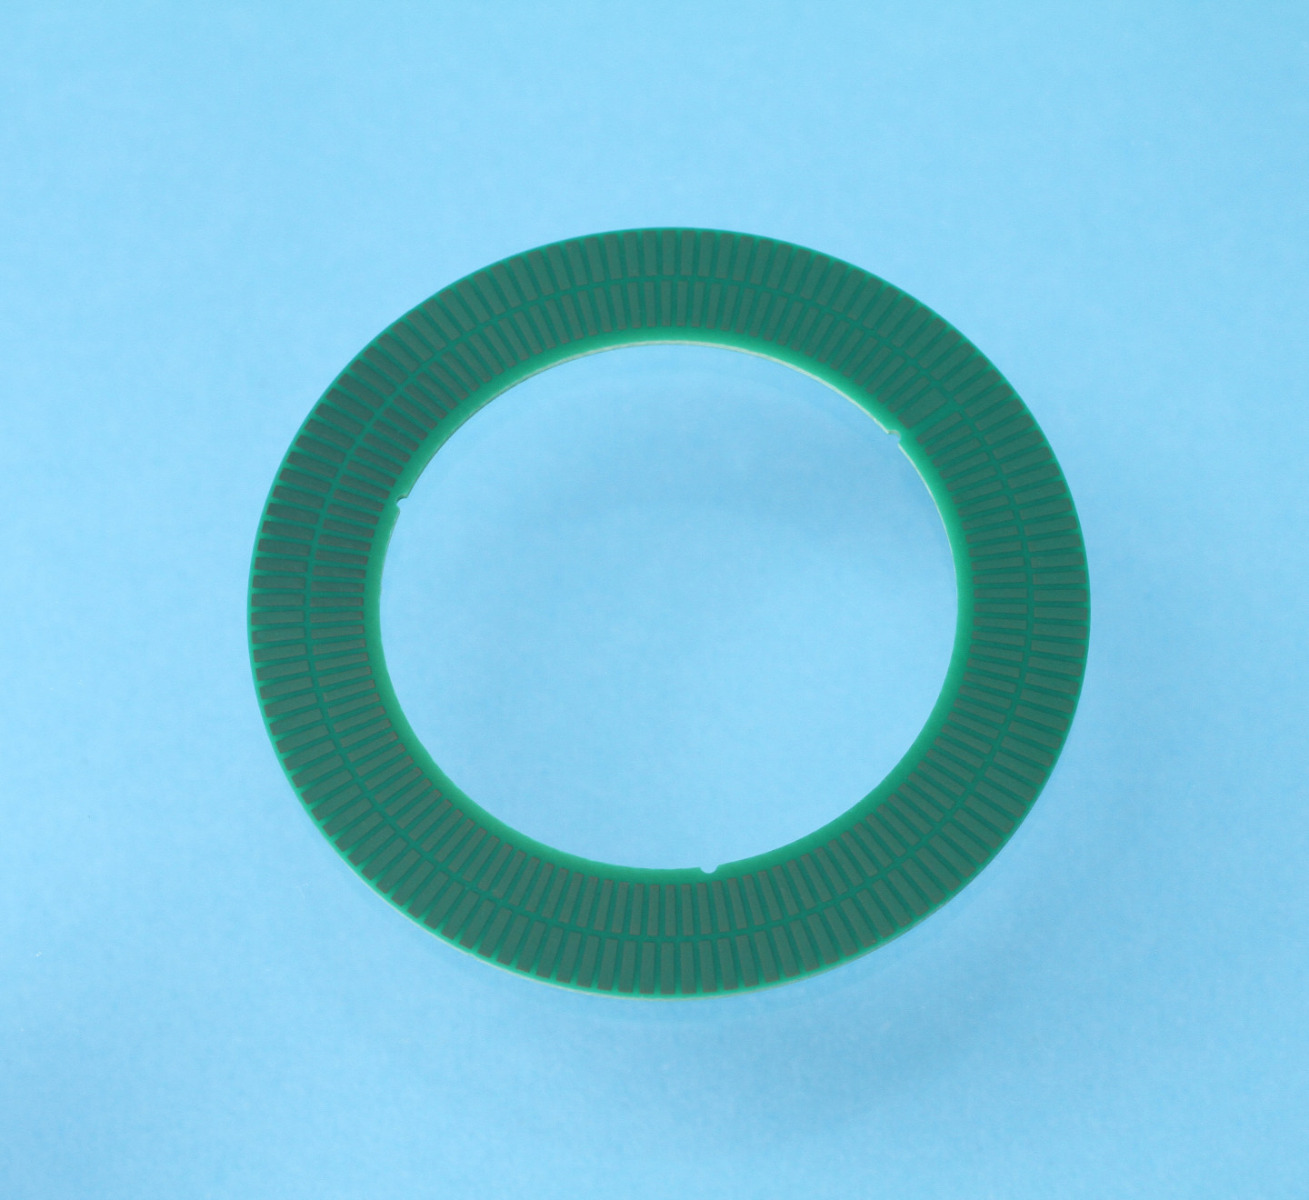 TPCS02 Codewheel with 128 periods, inner diameter 36 mm and outer diameter 52.7 mm for Incremental Encoders ID1102C, ID4501C